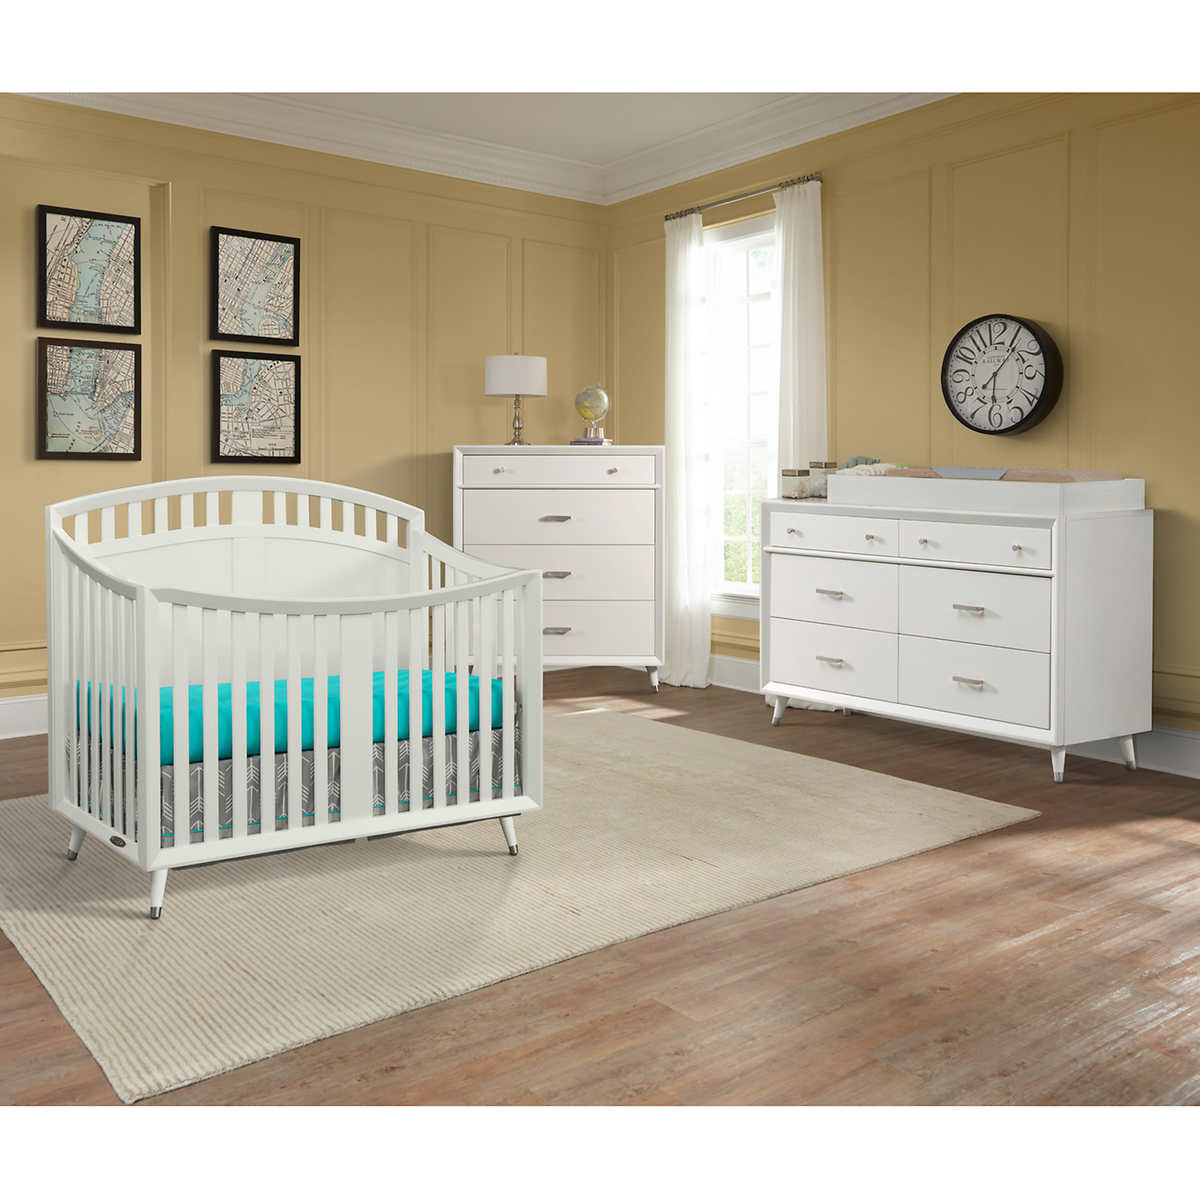 White plastic toddler bed costco - Tremont Arch Top Crib 3 Piece Nursery Collection White